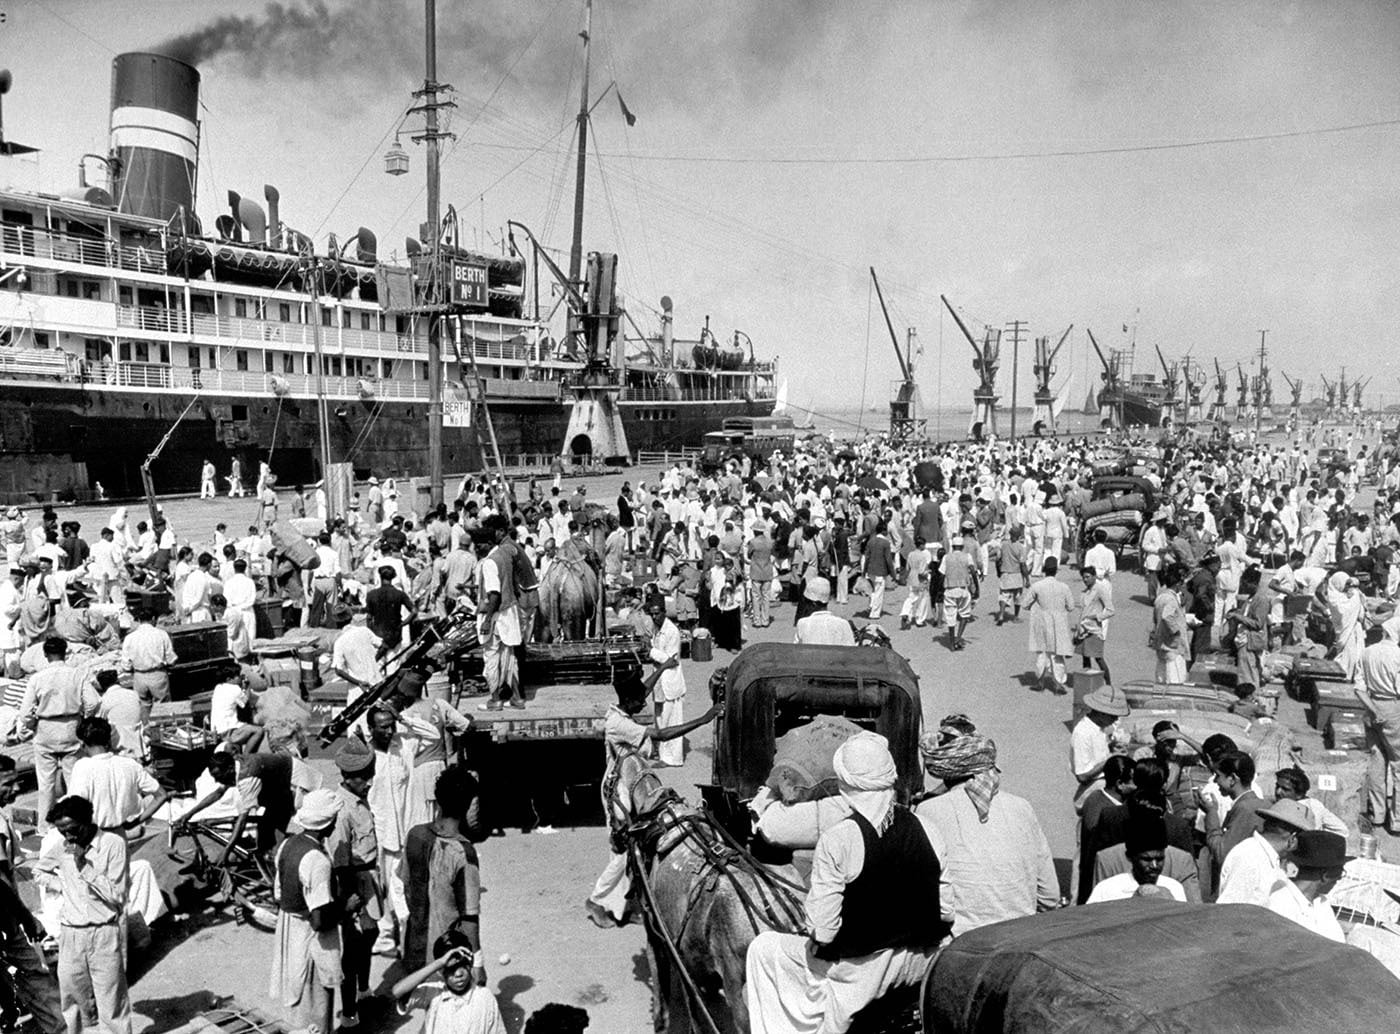 Hindu refugees wait to board ship at Karachi Harbour and embark for Bombay. — Excerpted with permission from Witness to Life and Freedom, Roli Books, Delhi